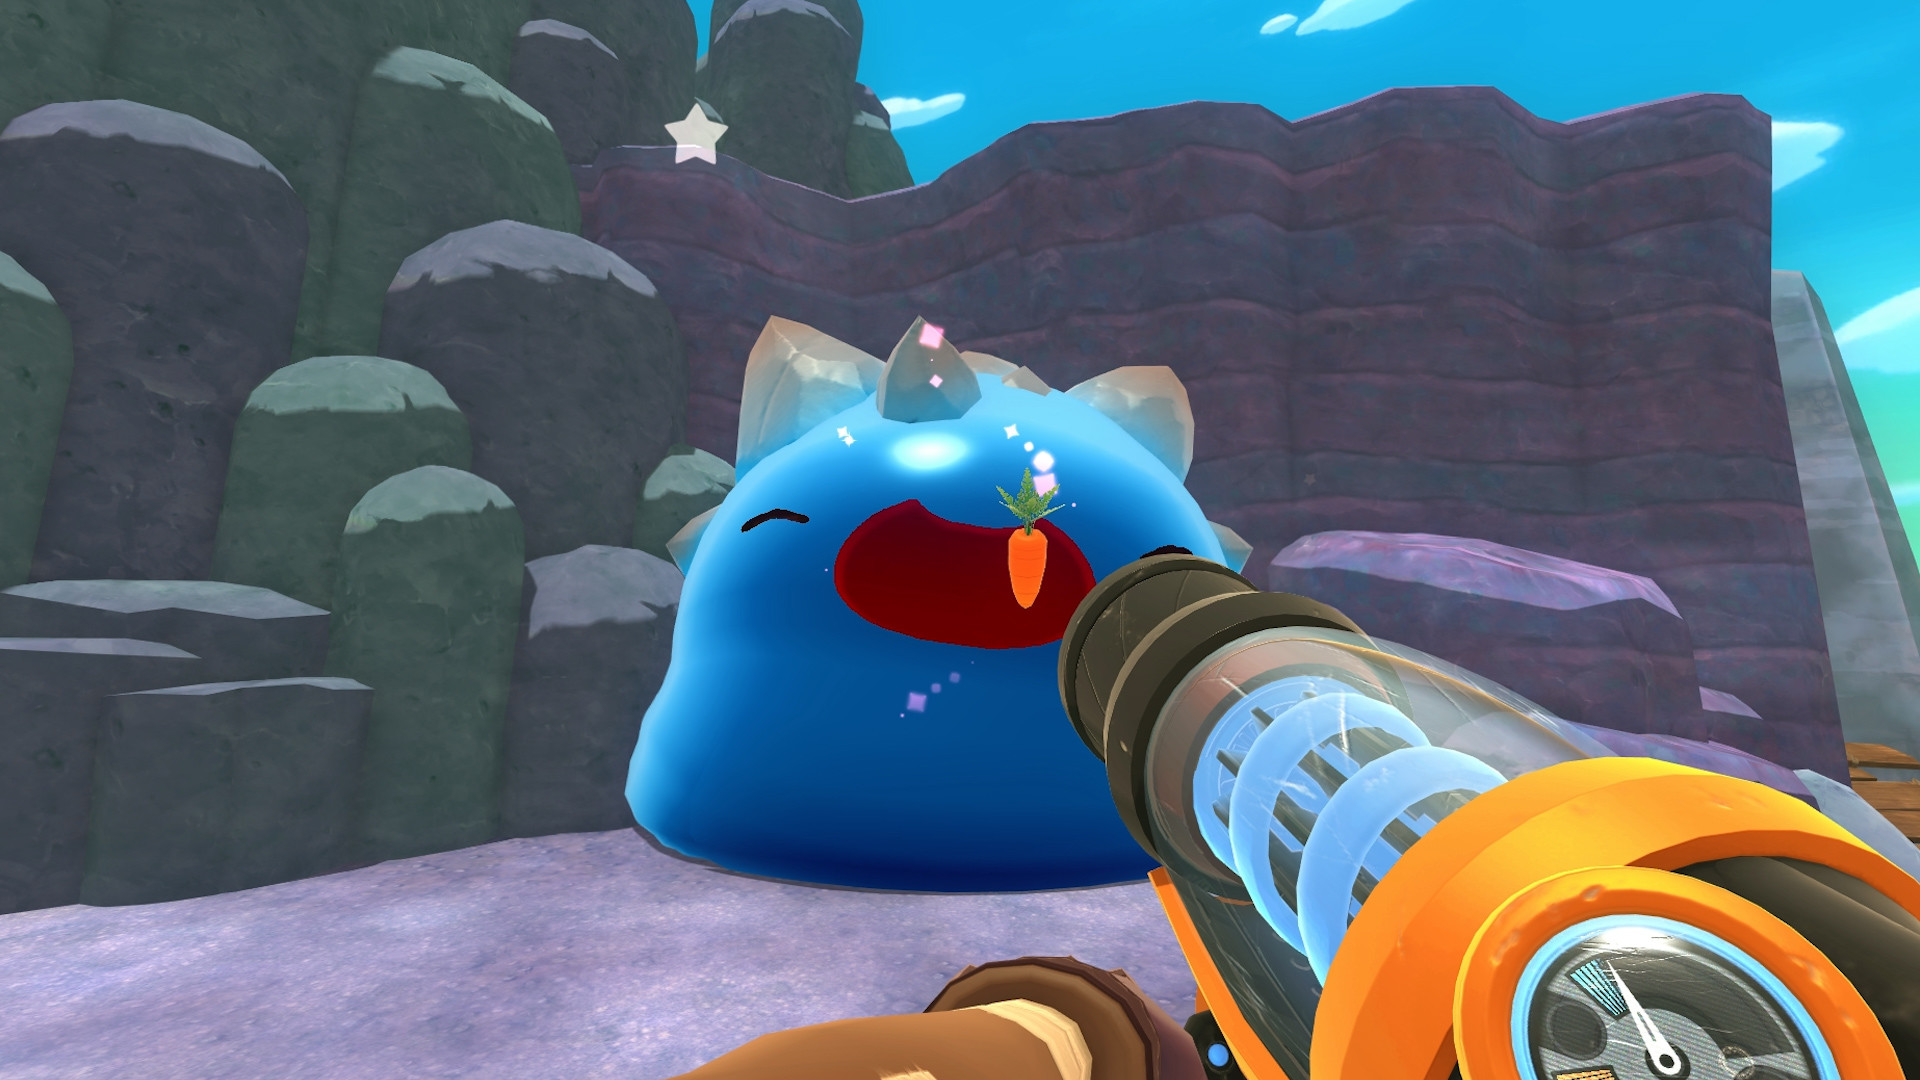 Slime Rancher (Steam Key, GLOBAL)